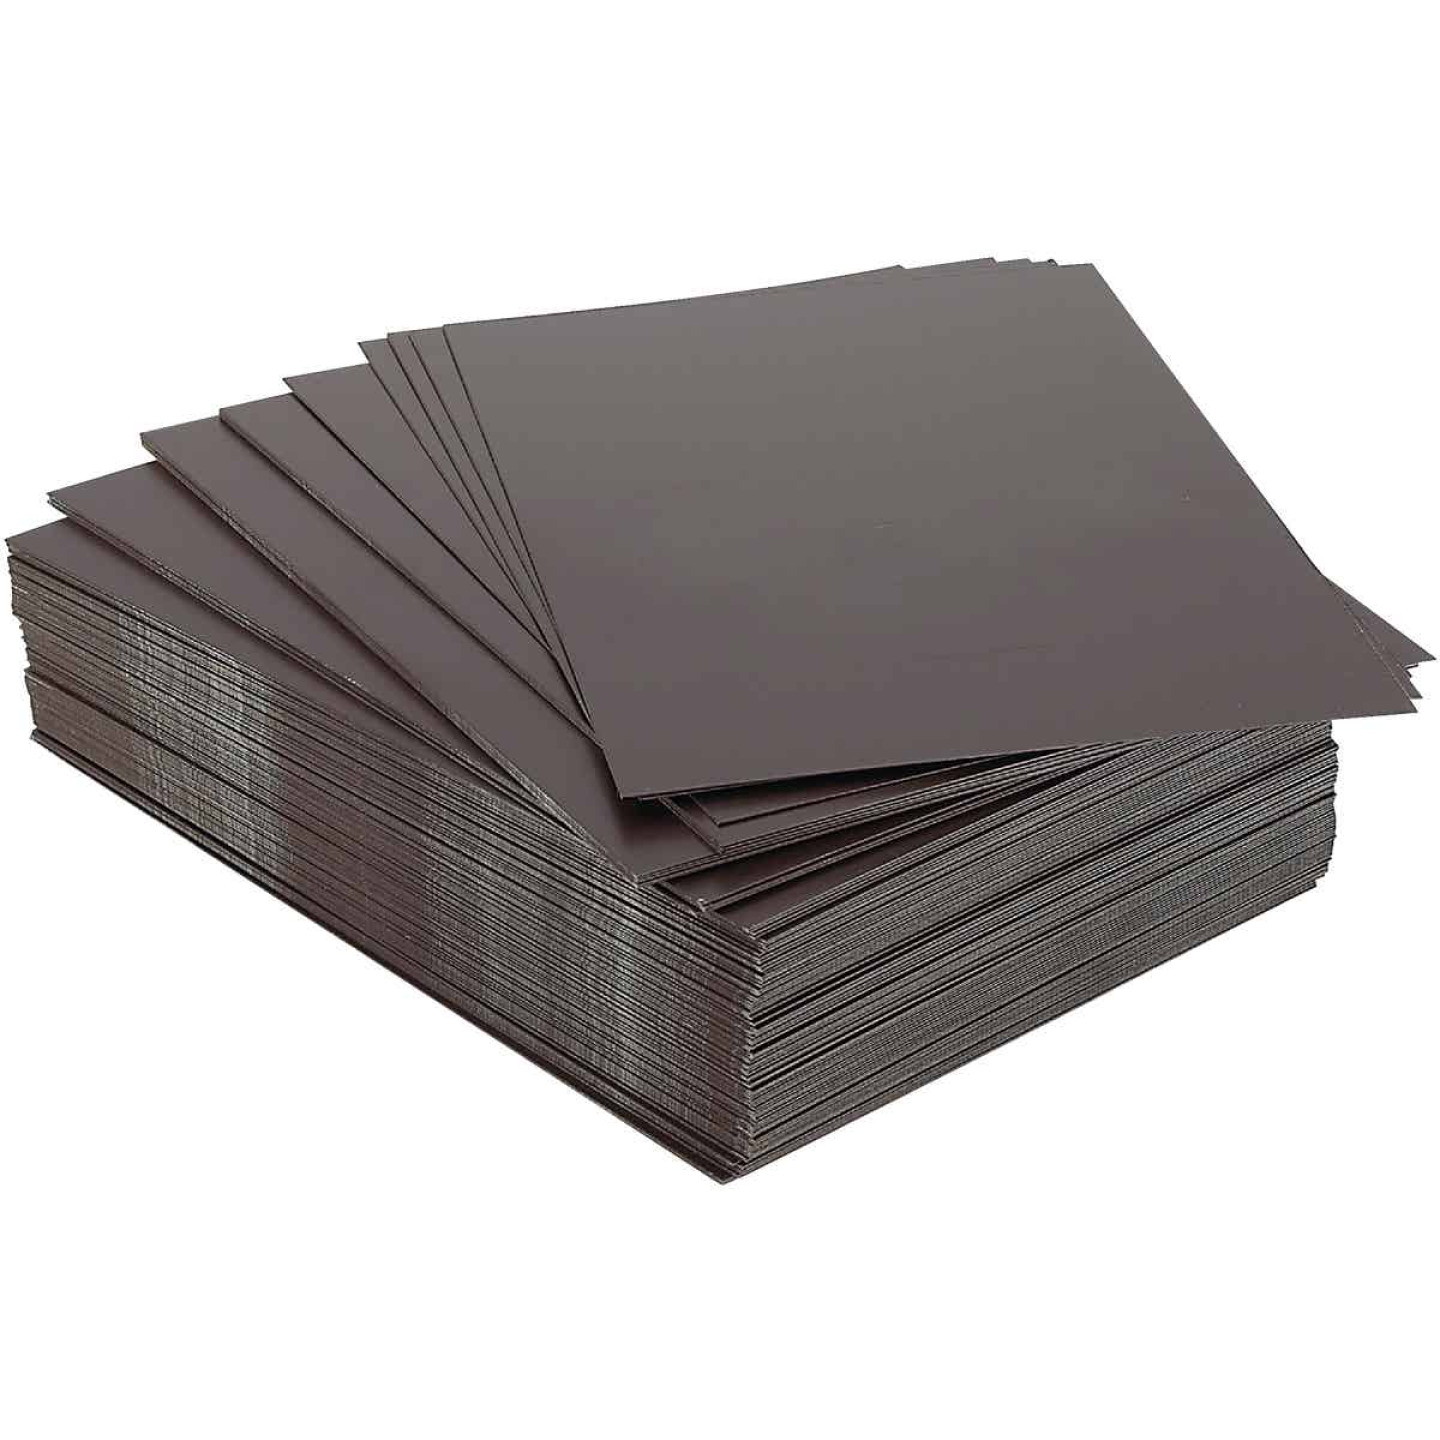 NorWesco 8 In. x 12 In. Brown Galvanized Step Flashing Shingle Image 1